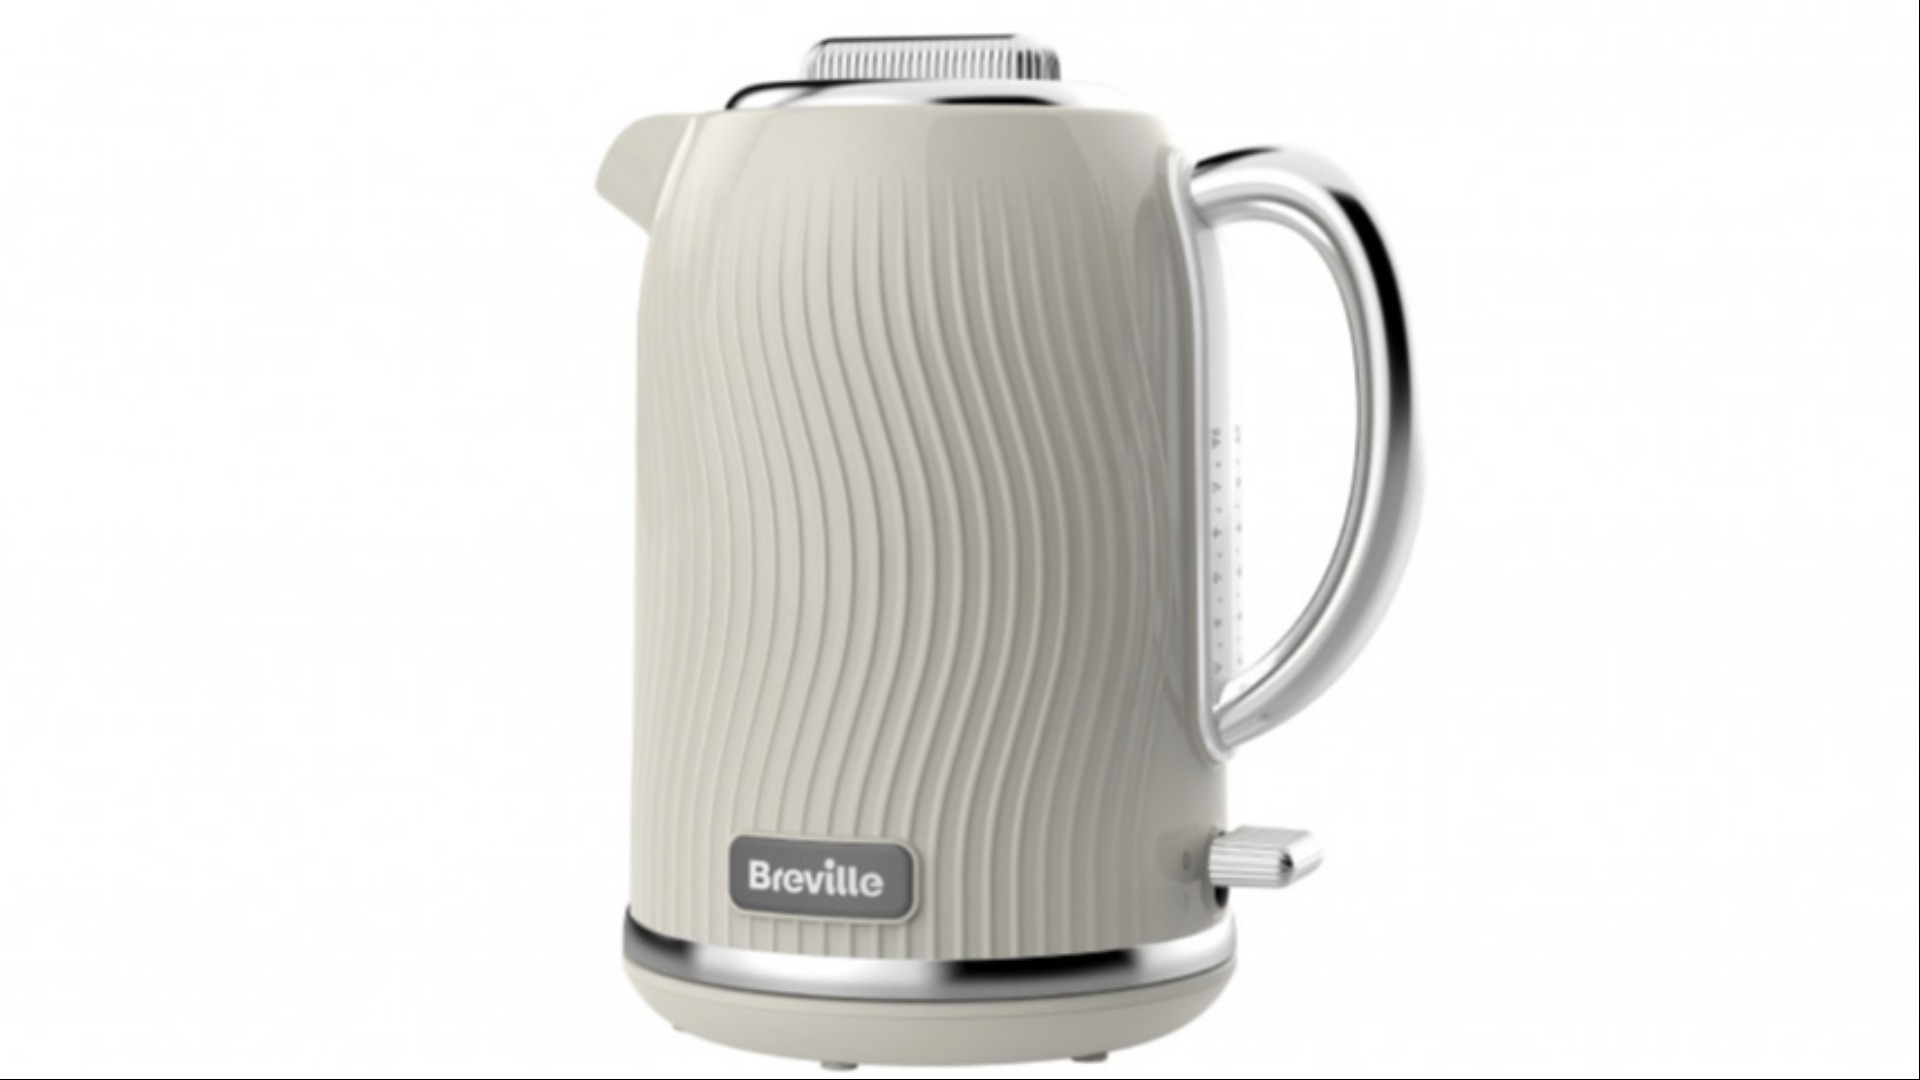 High Quality Breville Jug Kettle in